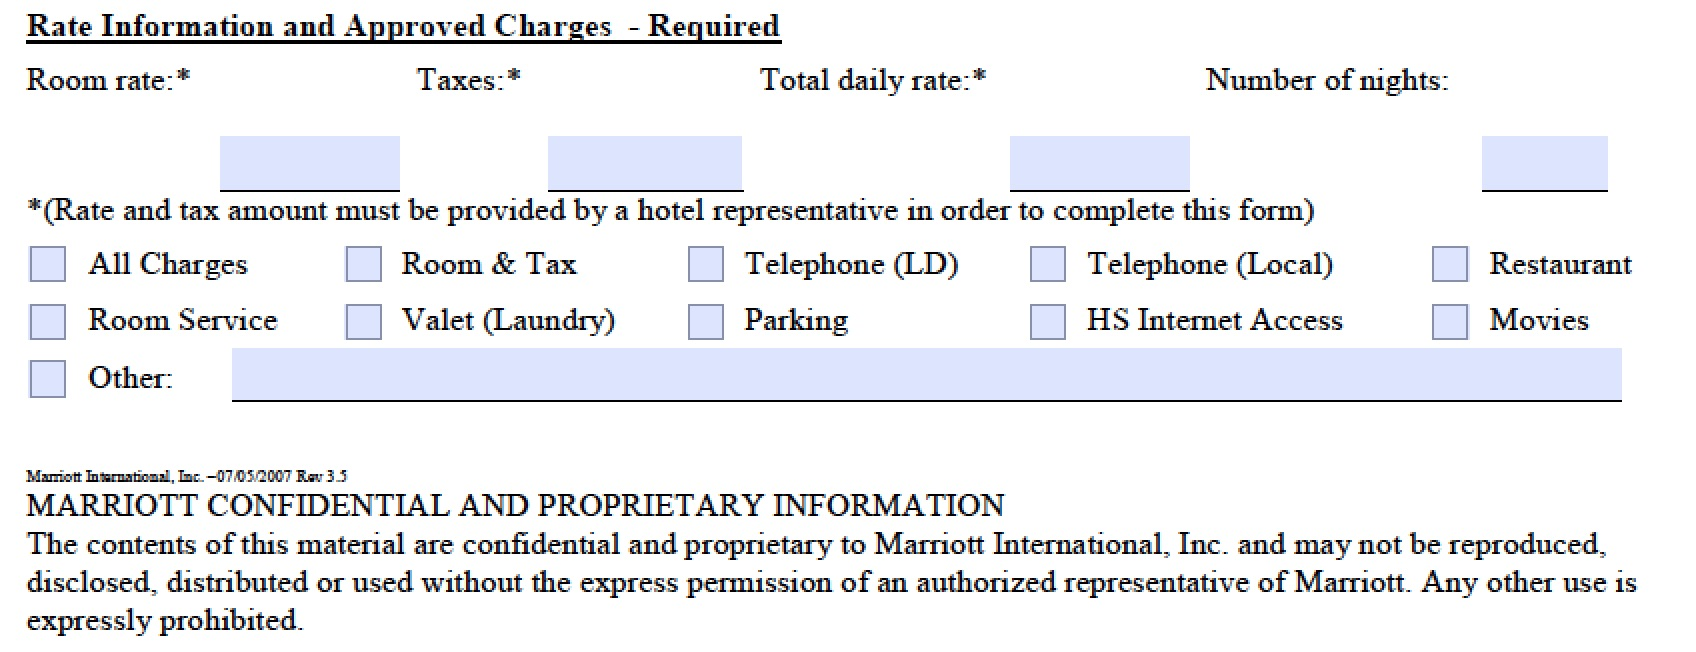 Z1gc9nc0u7 room rate discount authorization form according to.